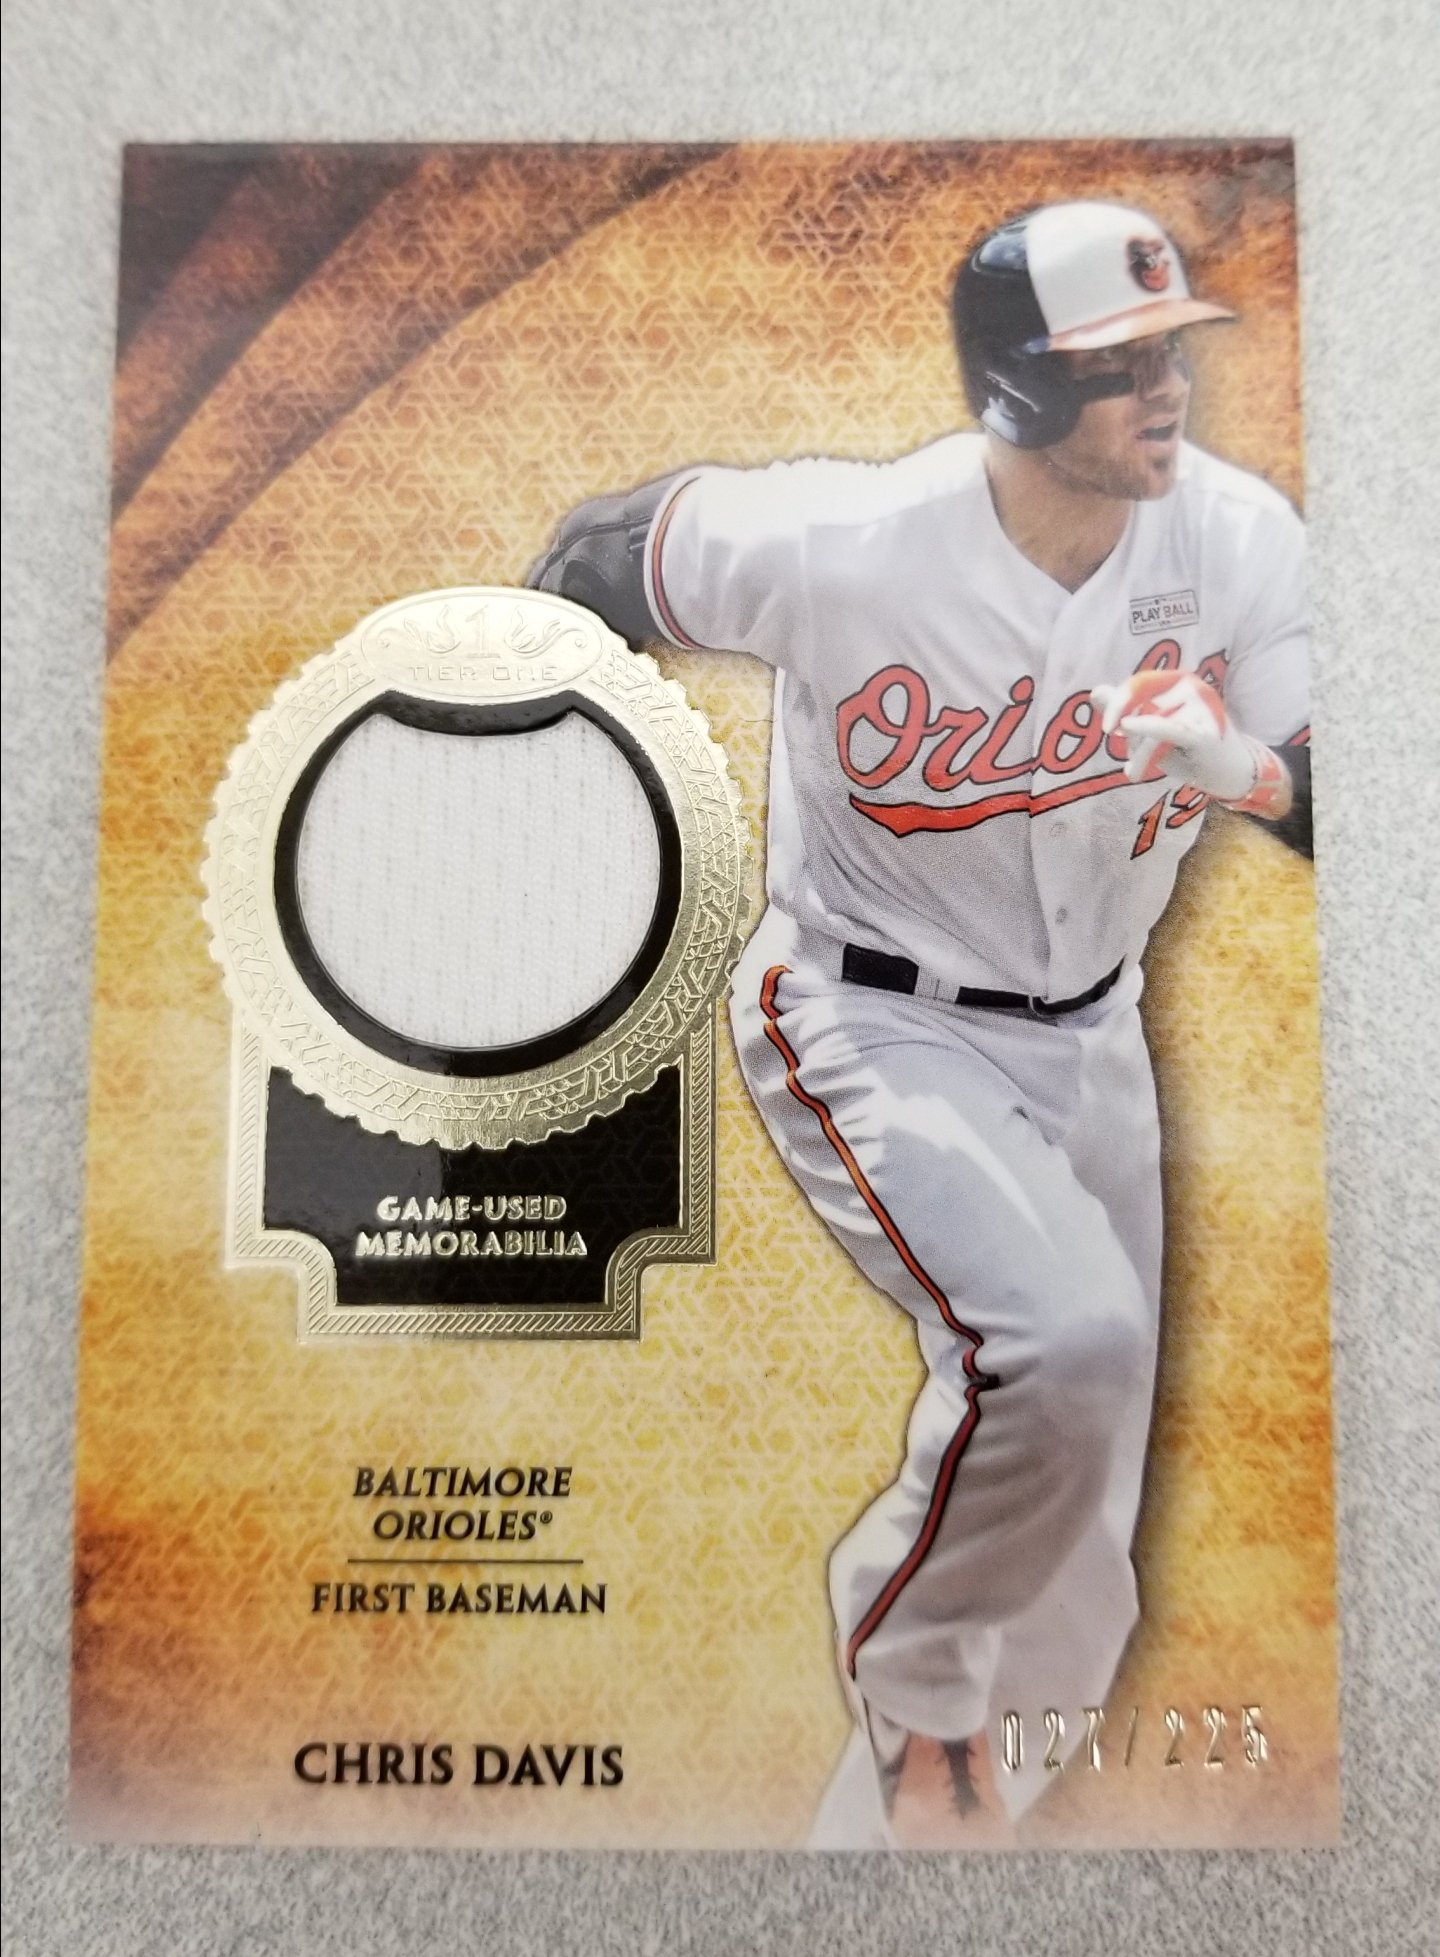 @Orioles fans, celebrate @CrushD19 's 32nd birthday and RT!       You can win this @Topps Tier One relic. #MLBcards https://t.co/g0uQYpkRol